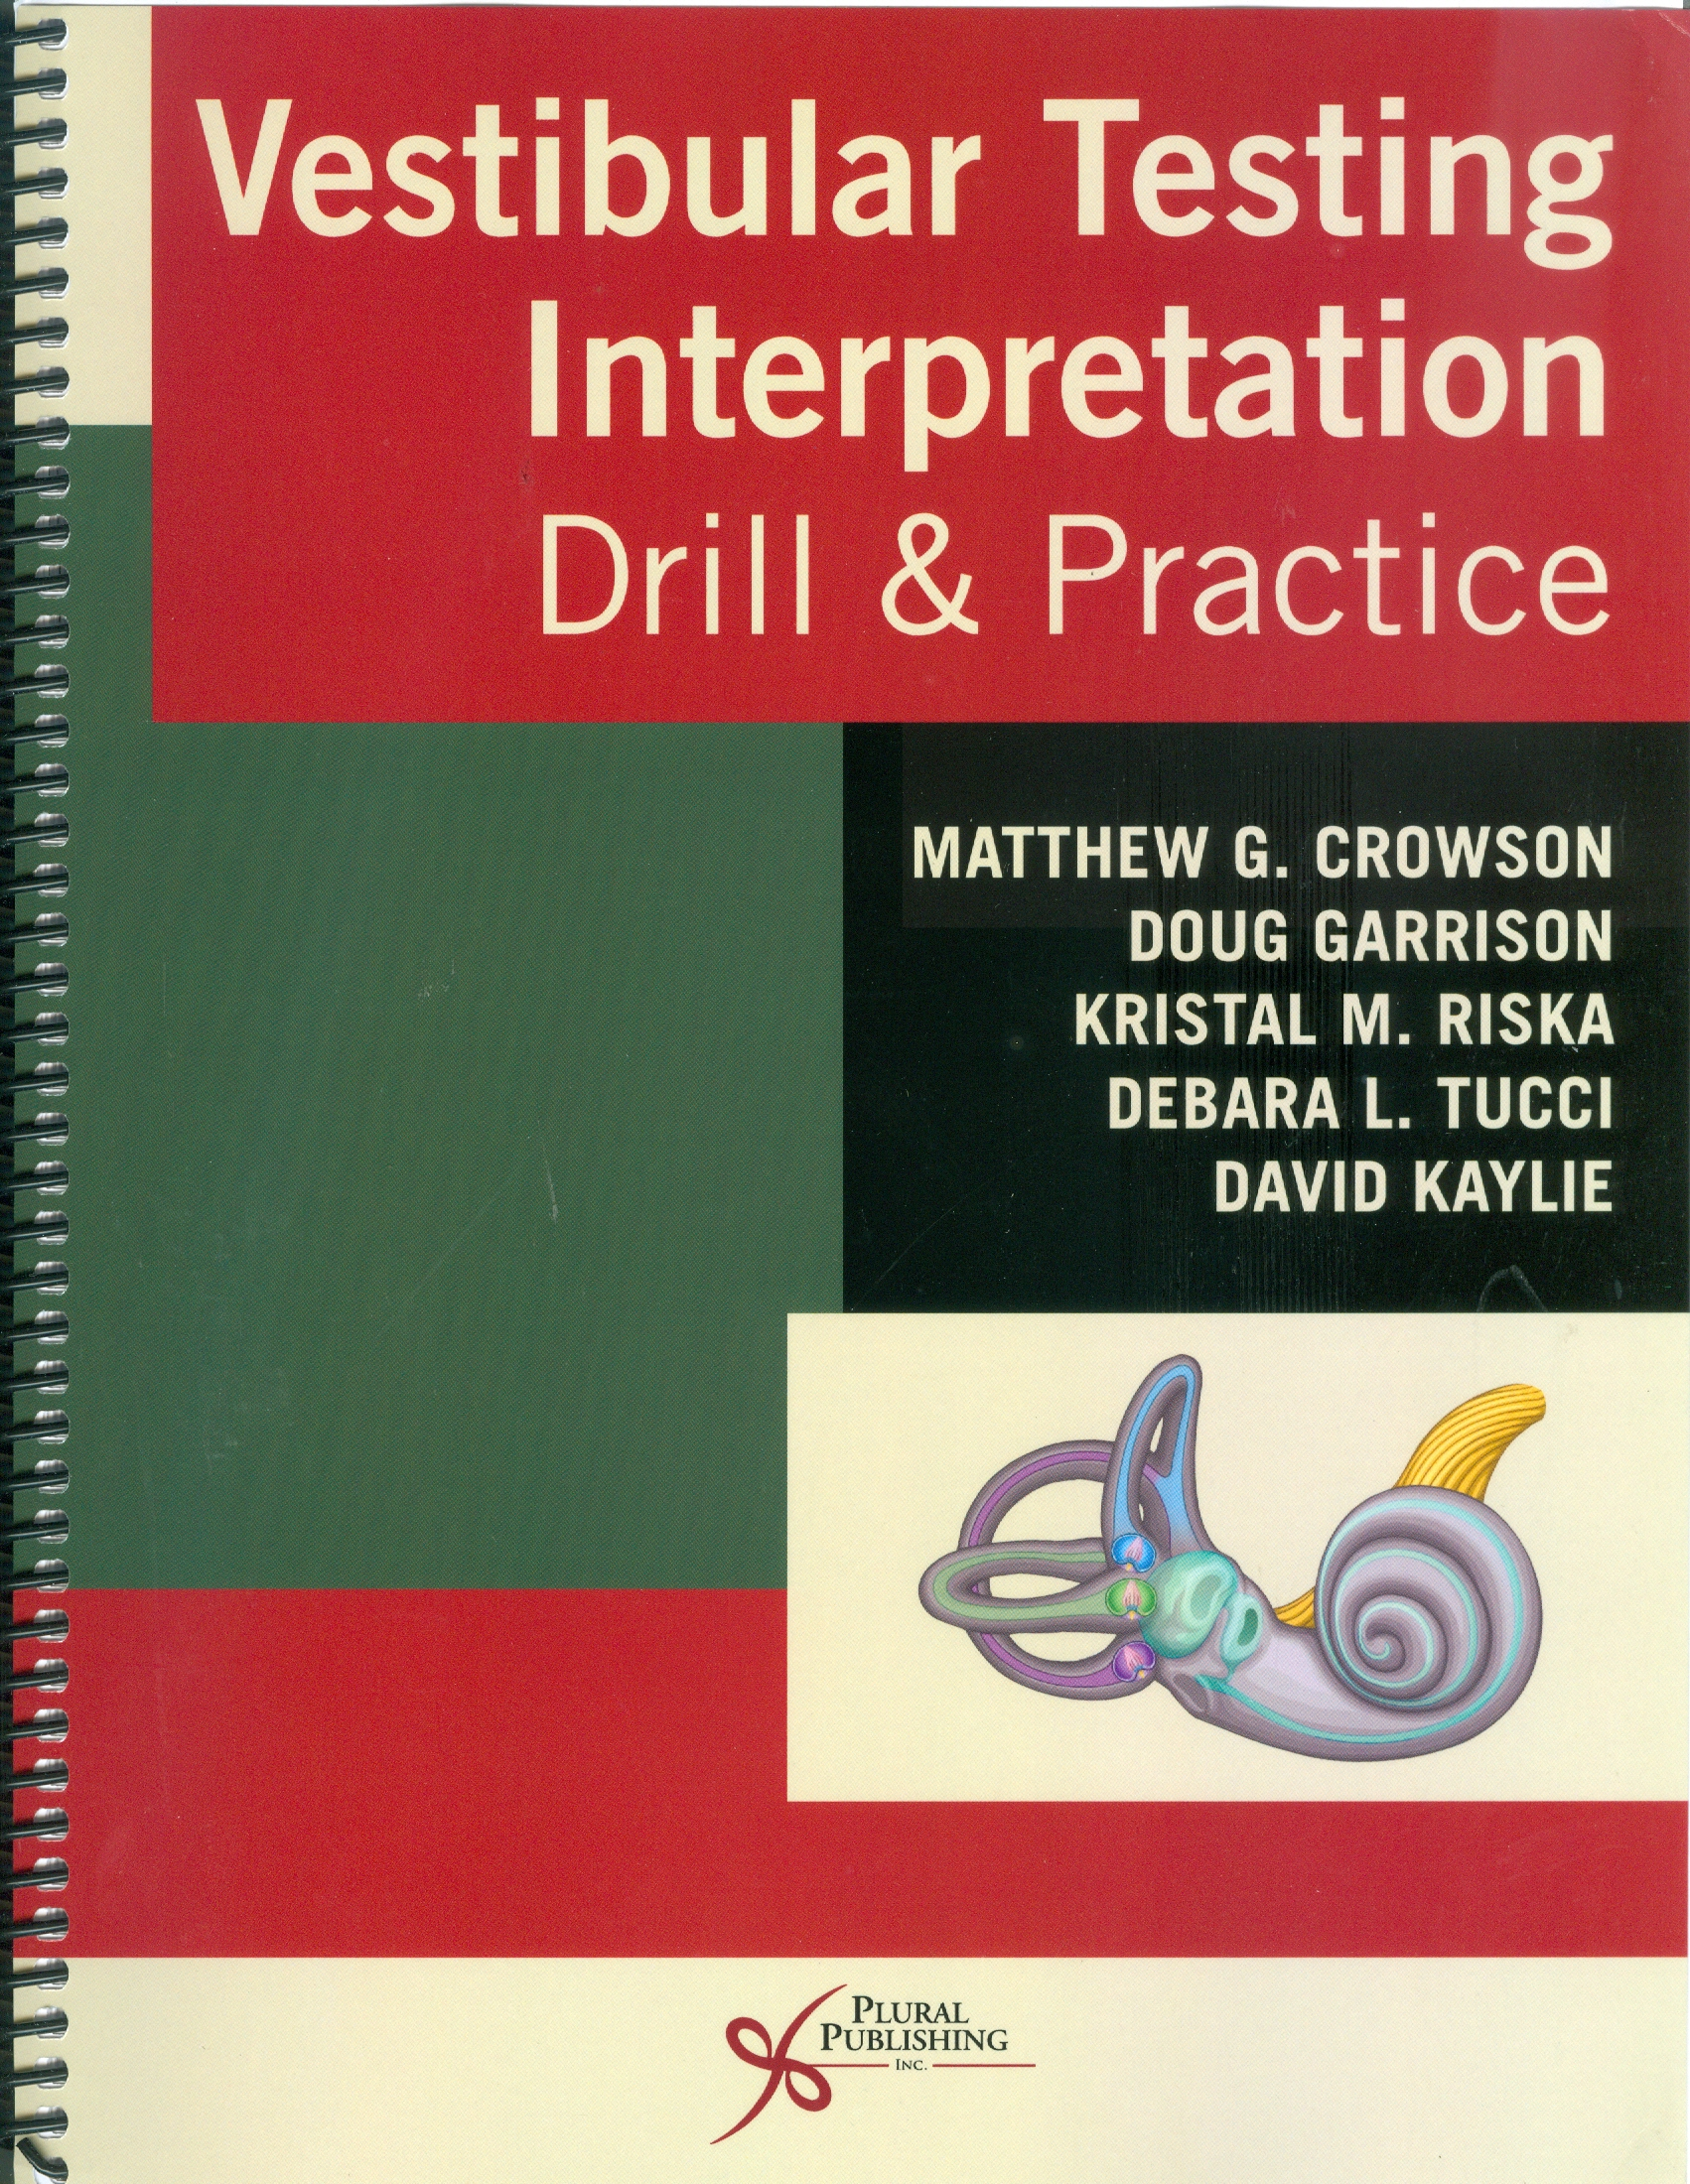 Vestibular Testing Interpretation: Drill and Practice